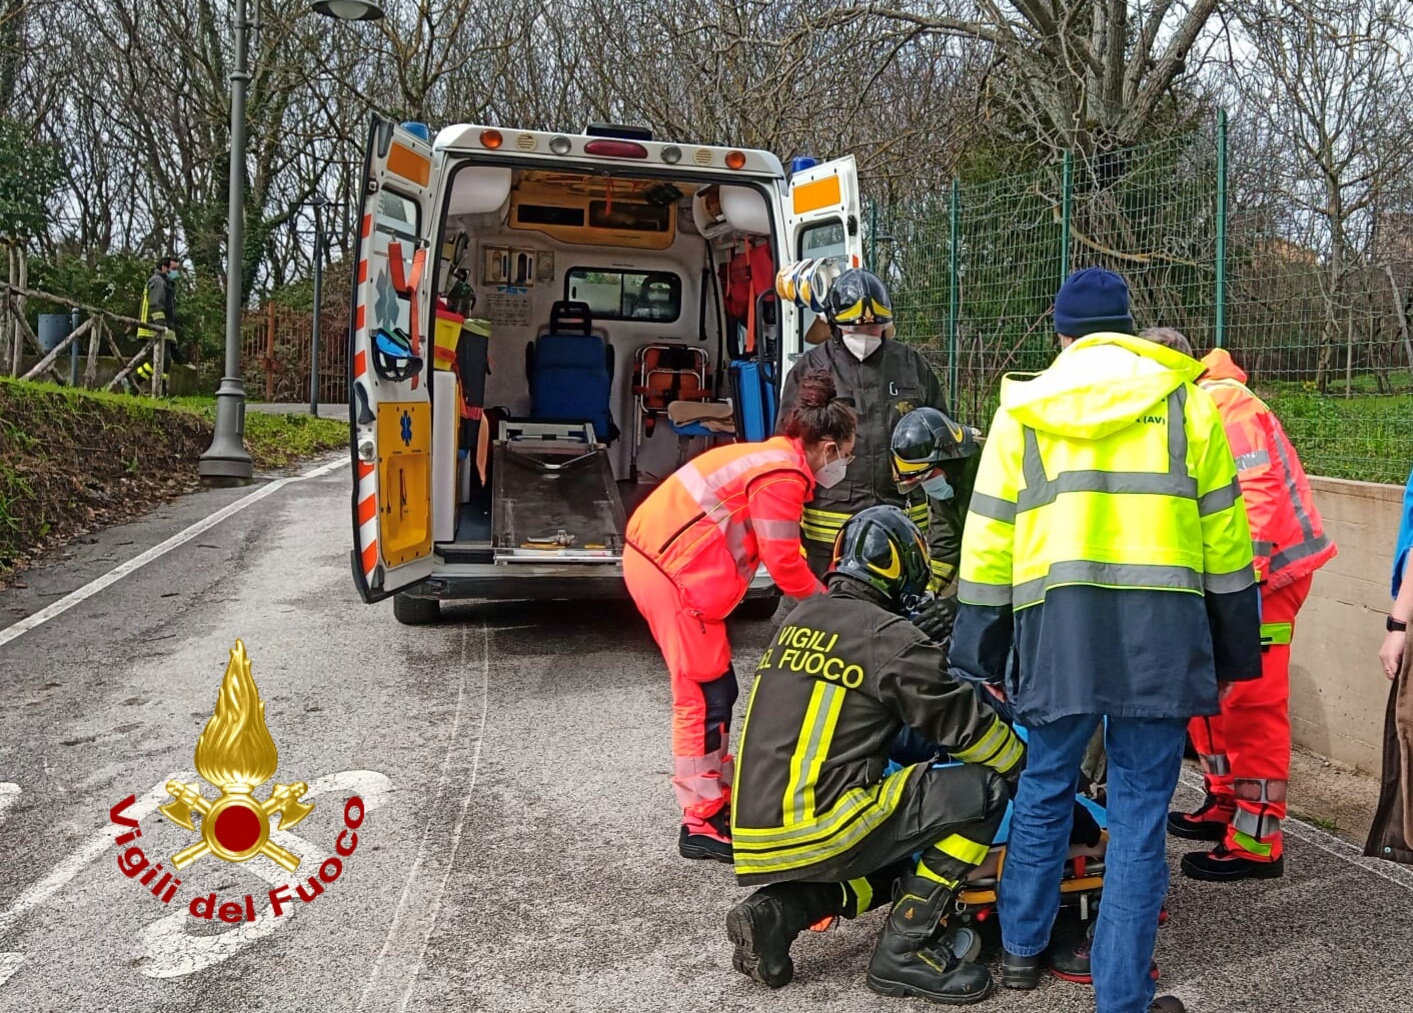 San Potito Ultra (AV). Incidente con l'Apecar, due anziani coniugi feriti